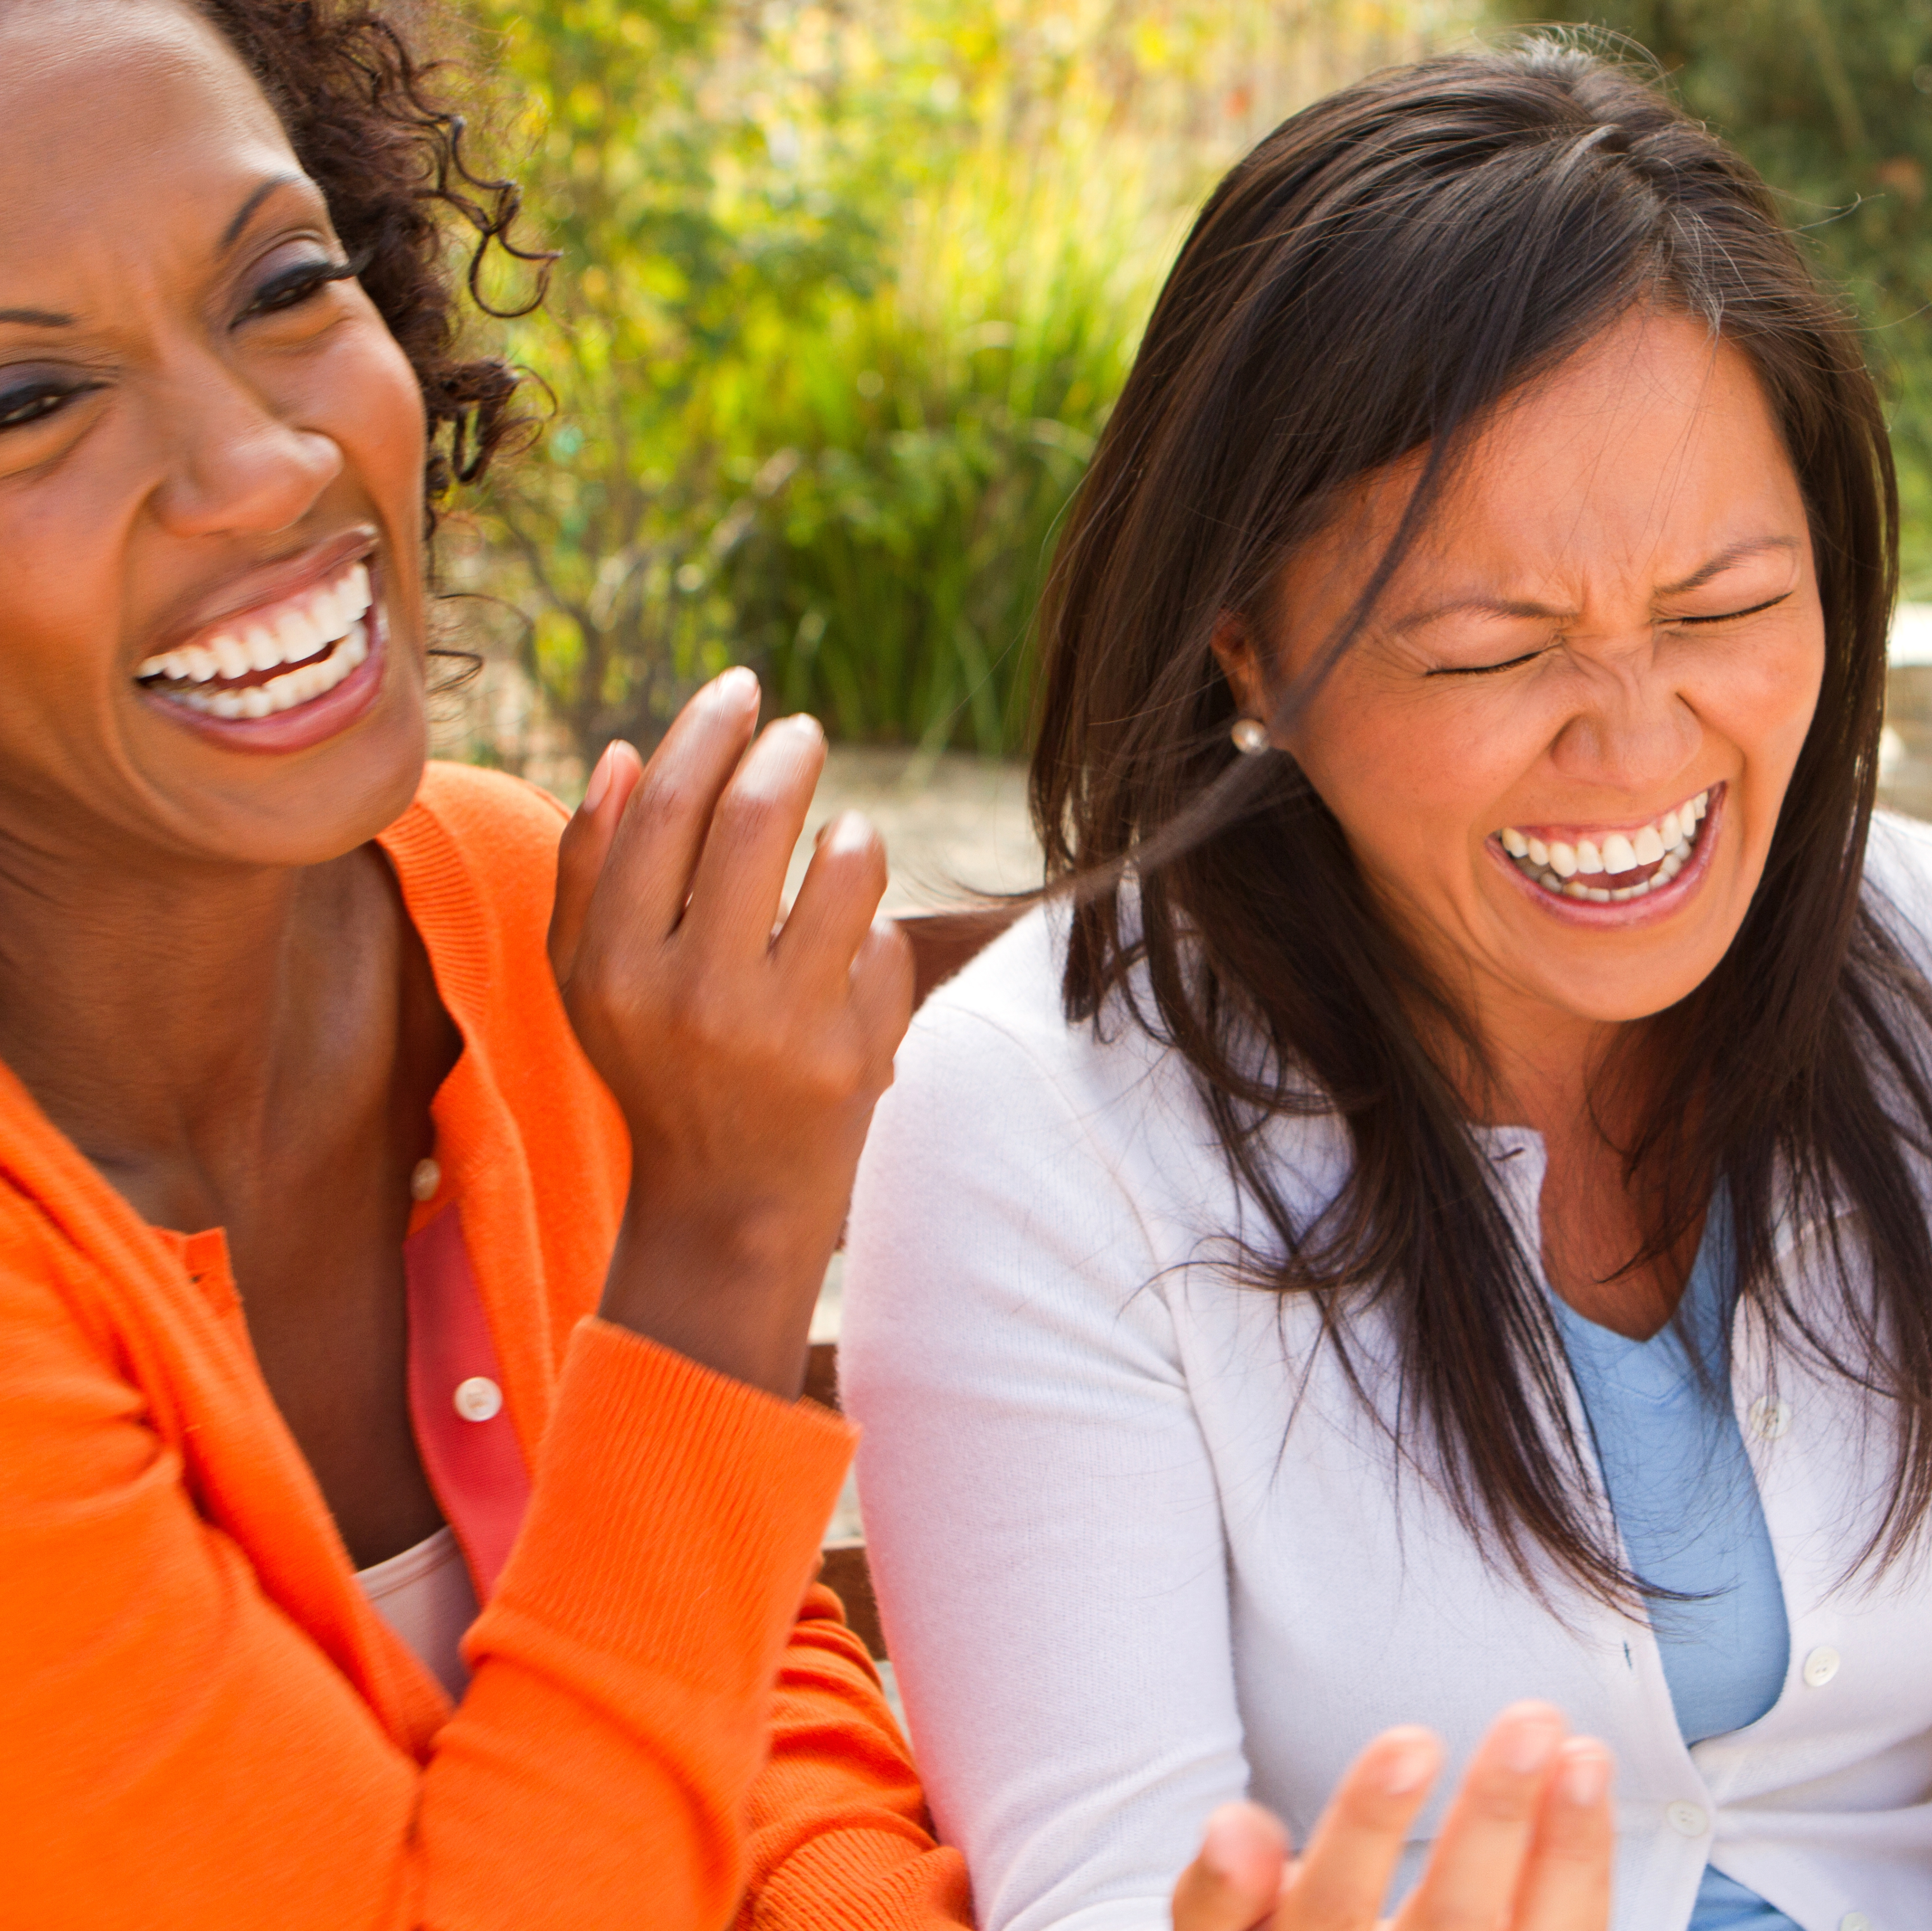 two middle-aged women friends smiling, laughing and having fun together